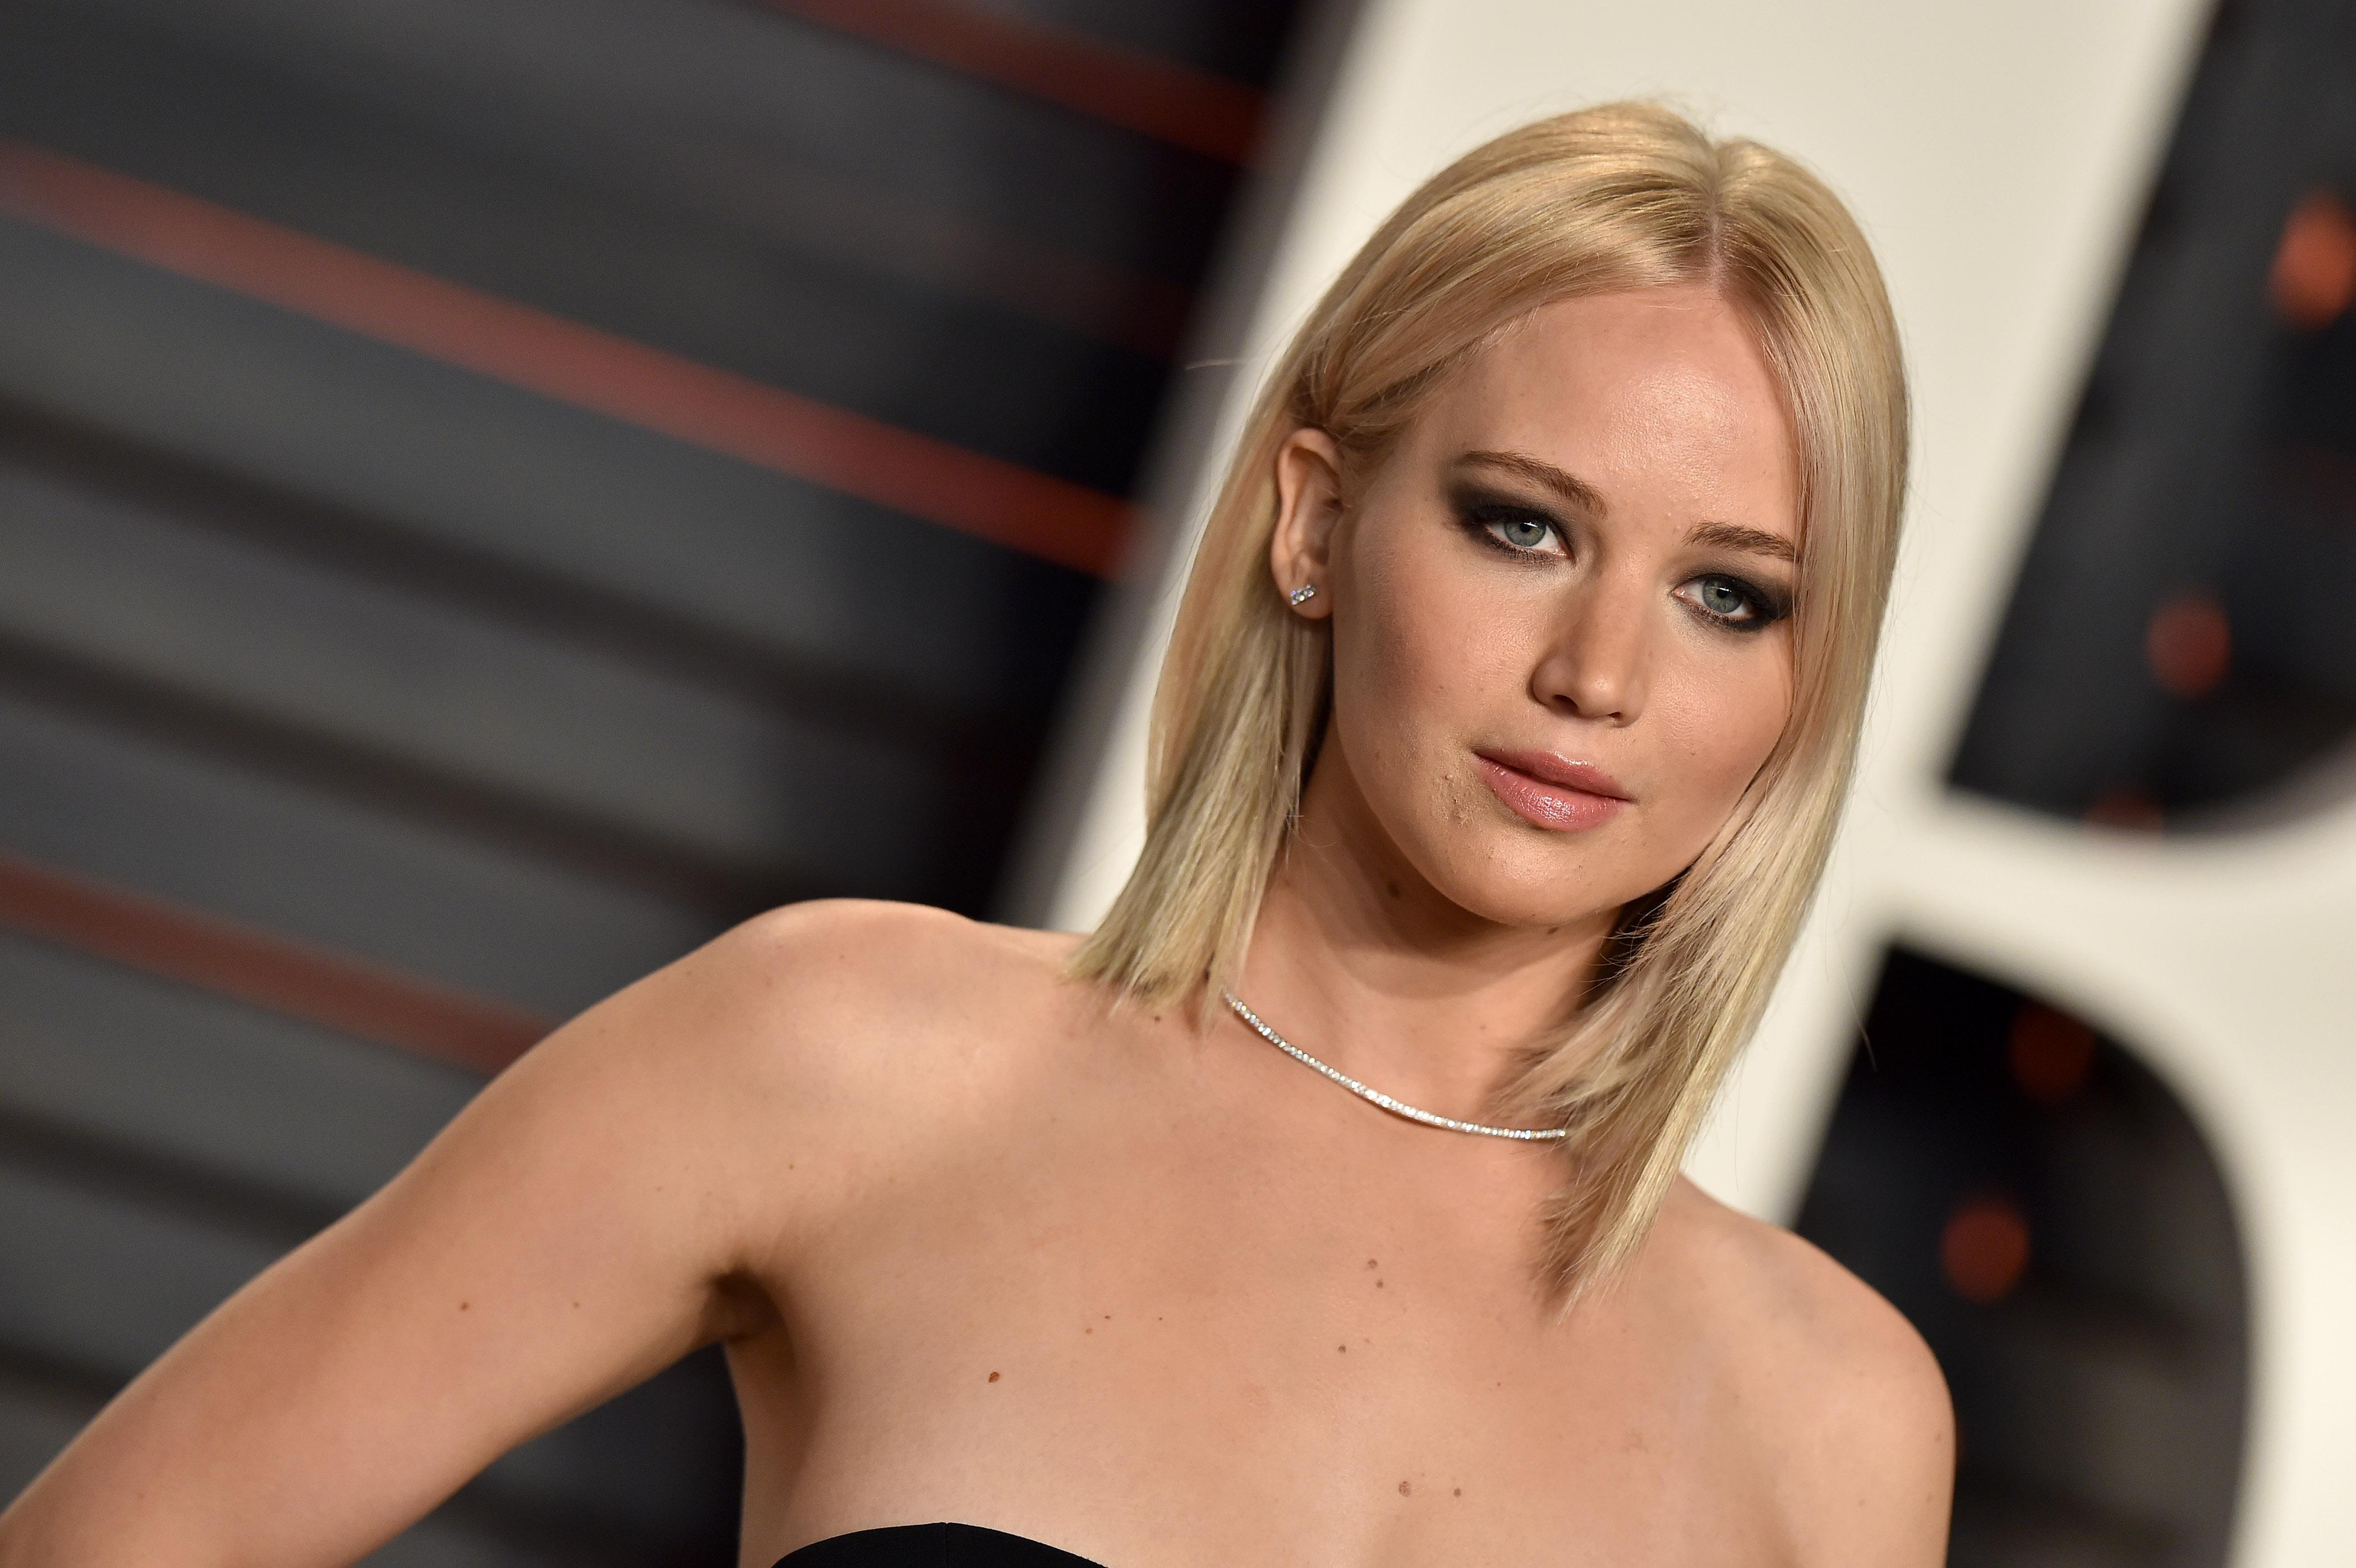 Actress Jennifer Lawrence arrives at the 2016 Vanity Fair Oscar Party Hosted By Graydon Carter at Wallis Annenberg Center for the Performing Arts on February 28, 2016 in Beverly Hills, California.